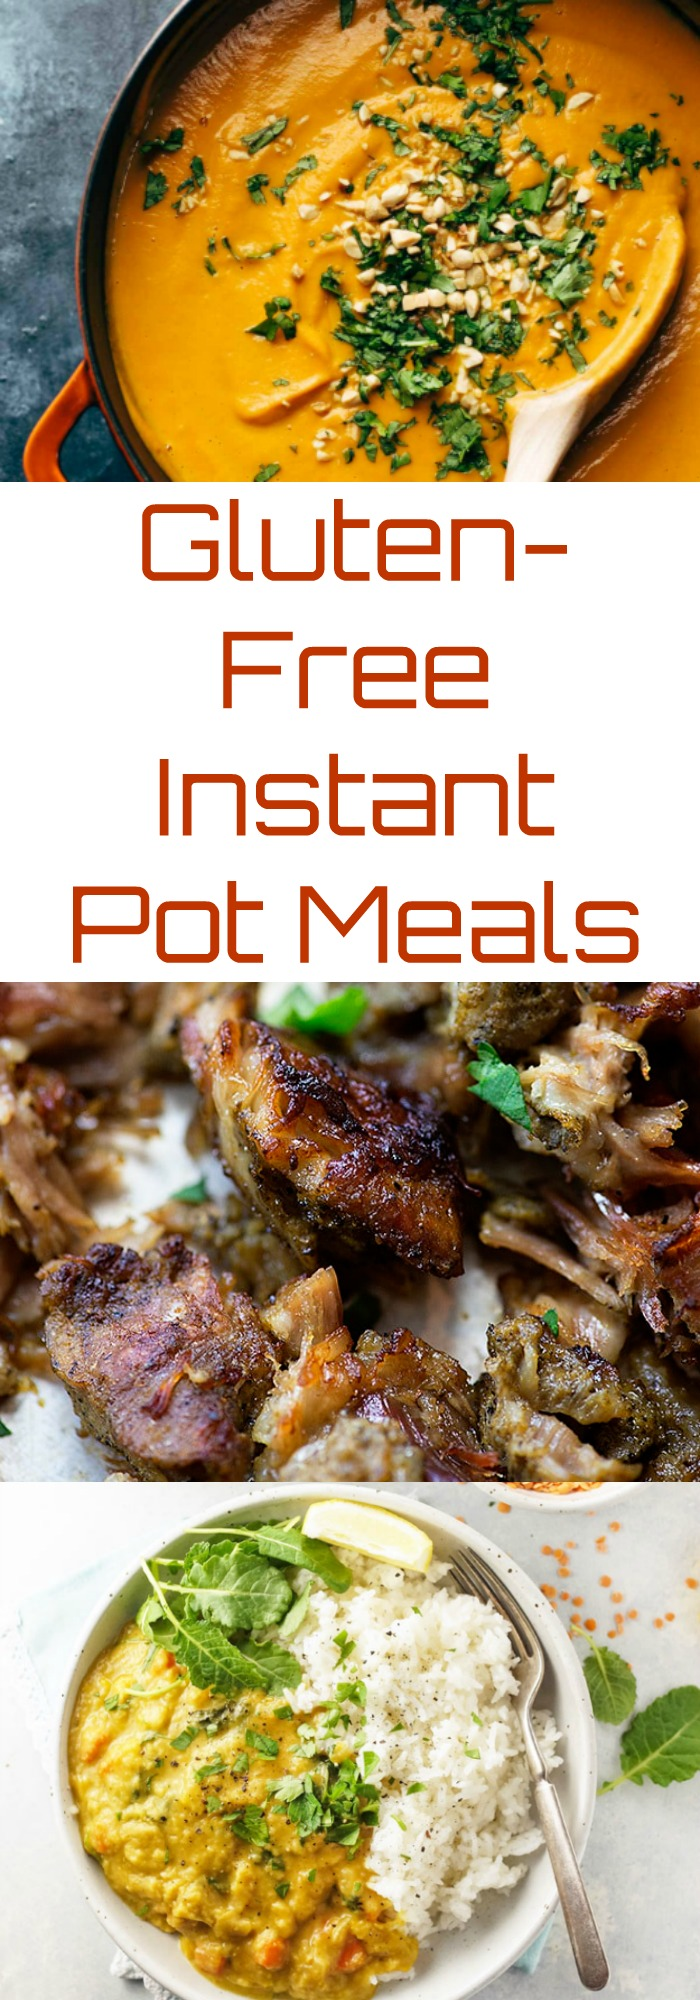 Gluten-Free Instant Pot Meals that are perfect for new moms and weeknight dinners!